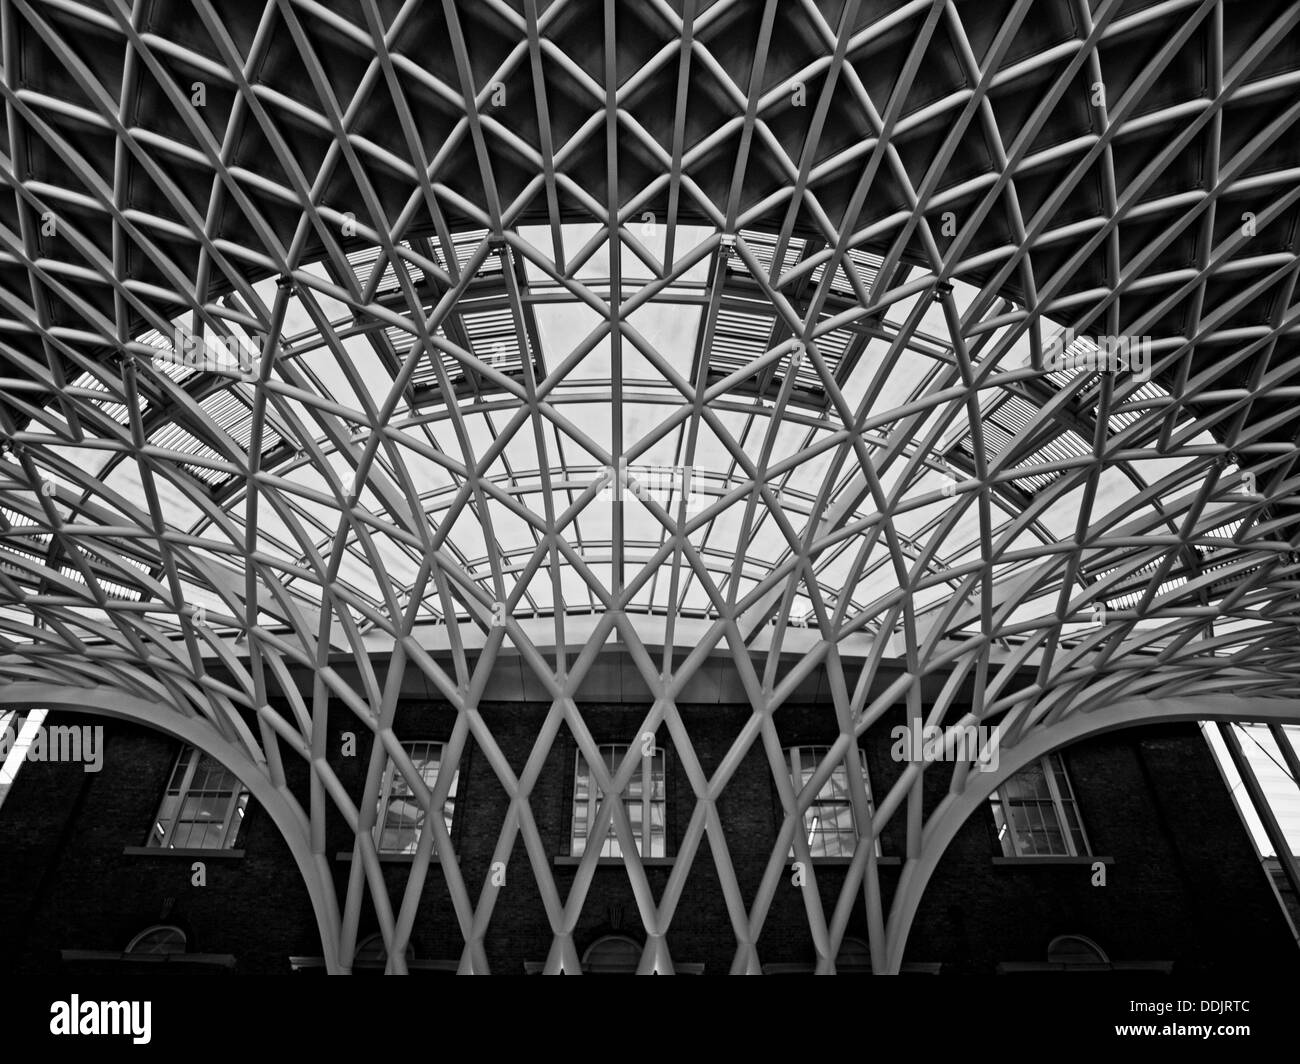 Detail of the steel lattice-work roof structure engineered by Arup, on the  western concourse of King's Cross railway Station